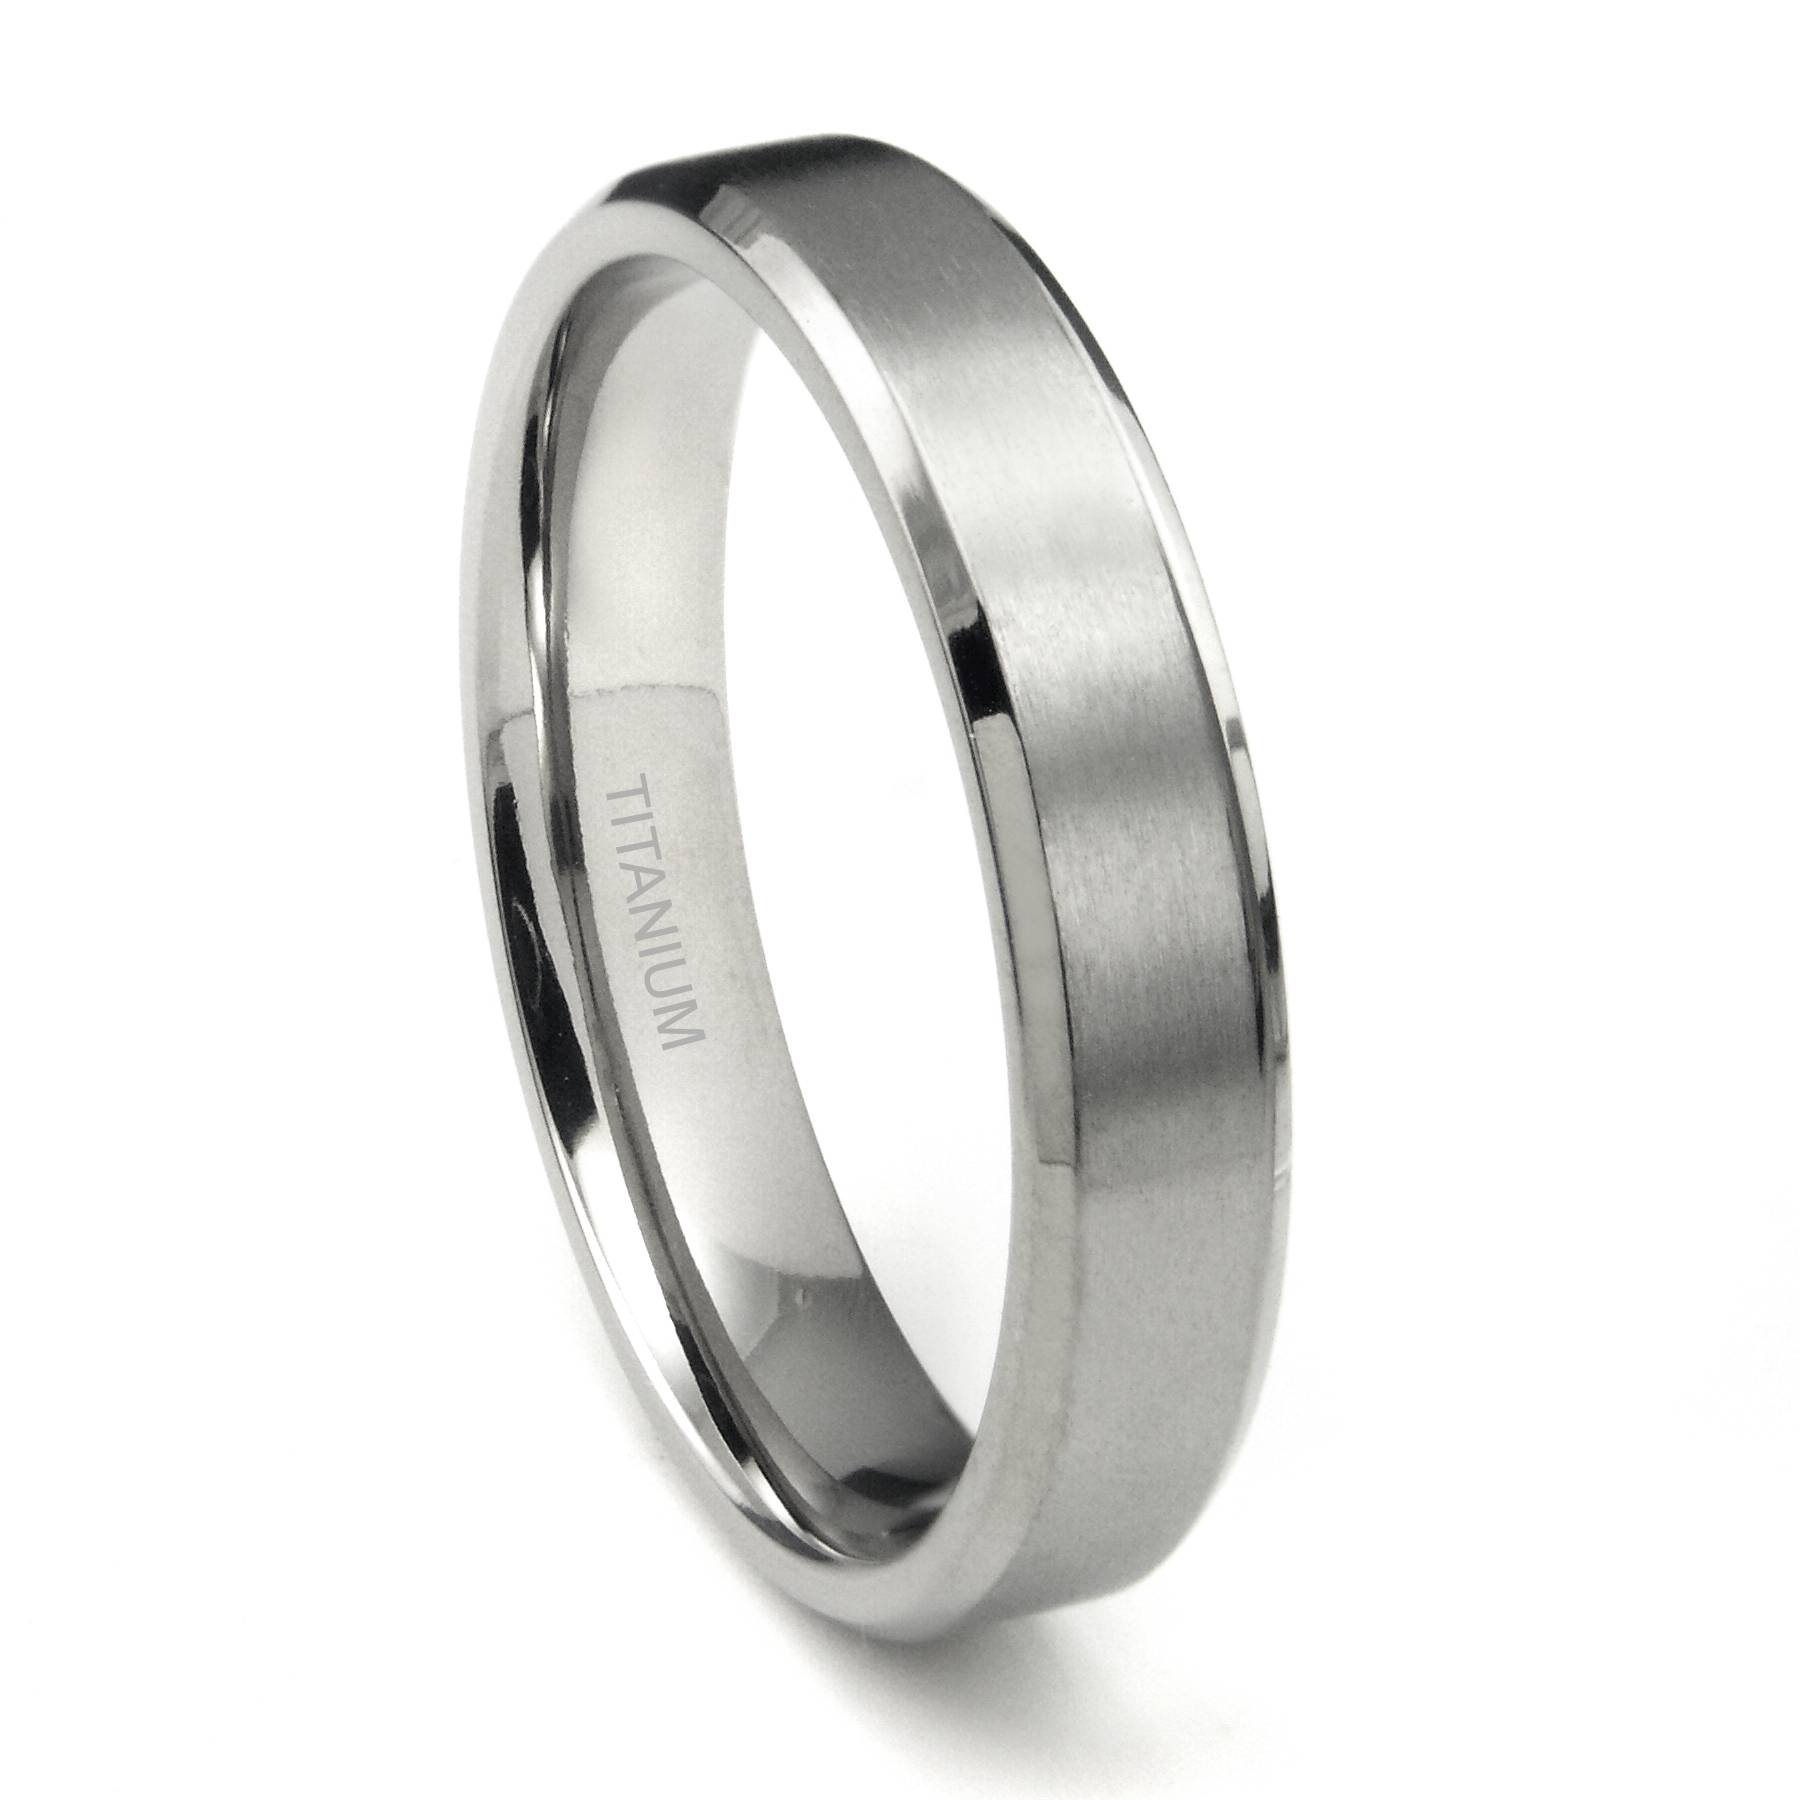 Titanium 5Mm Beveled Wedding Band Ring W/ Brushed Center Pertaining To Titanium Wedding Bands (View 10 of 15)